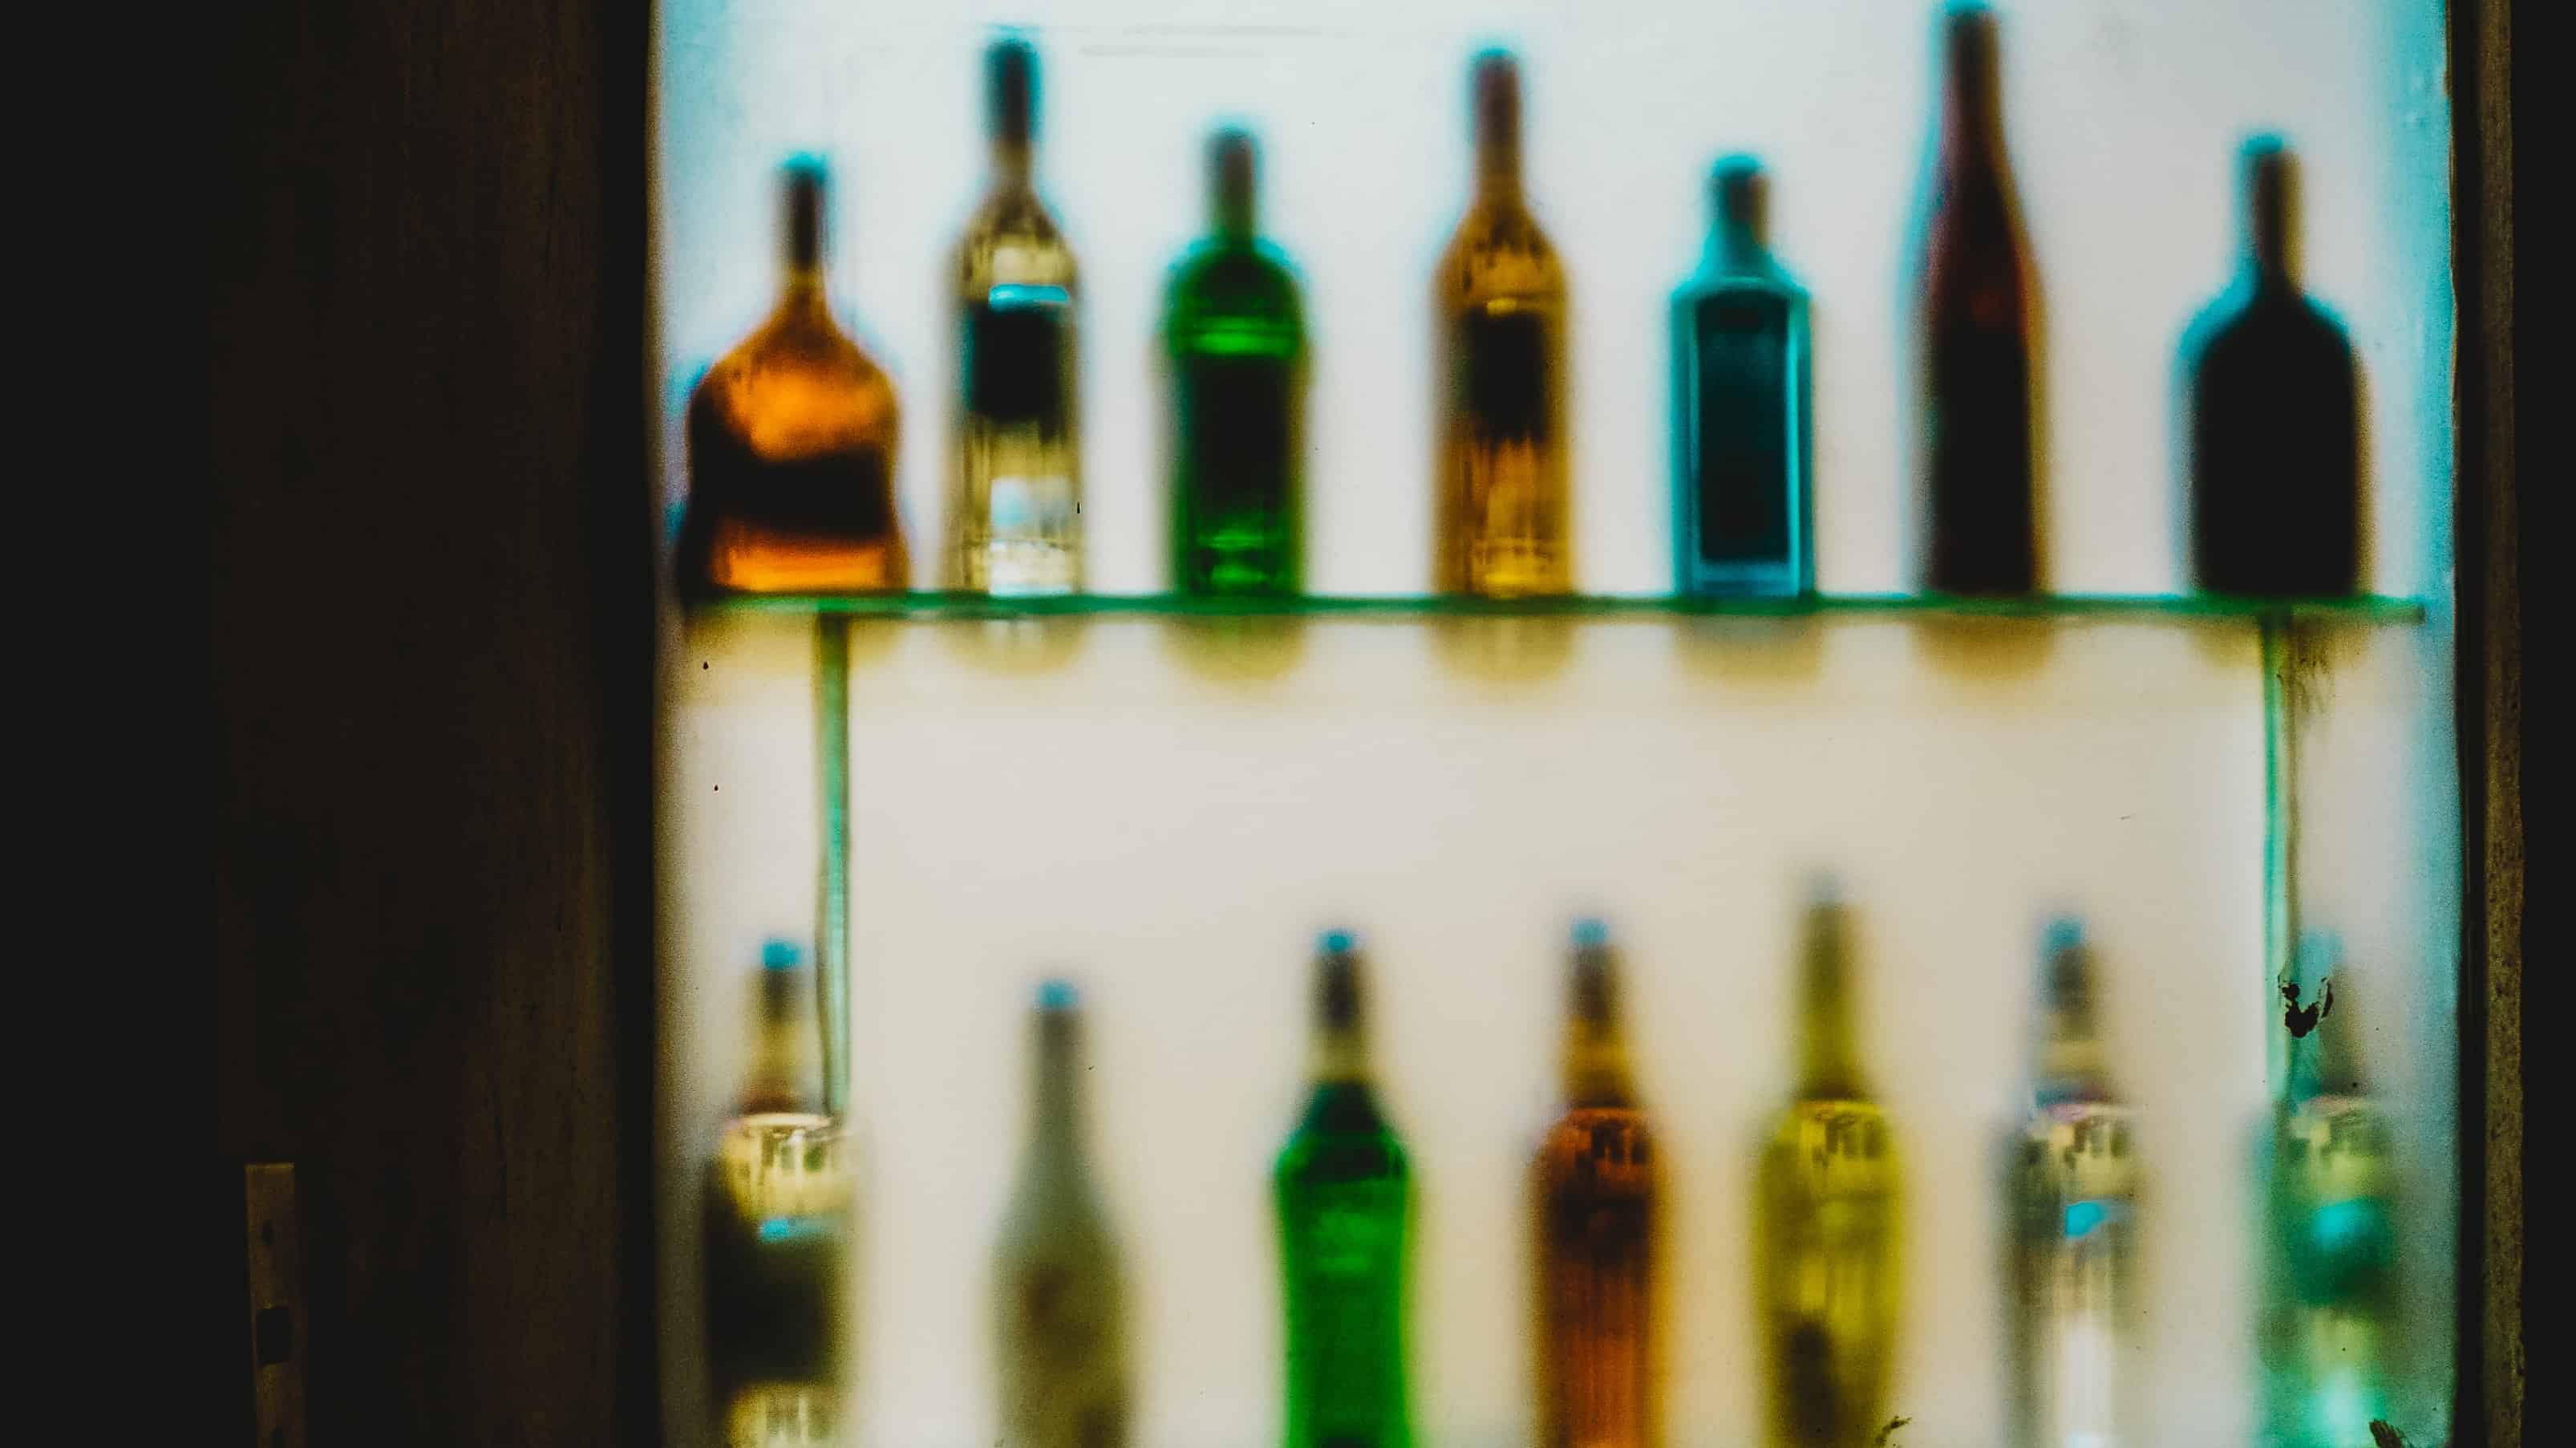 Disulfiram Antabuse is a medication for people struggling with alcohol addiction. Antabuse treatment can have unpleasant effects (called Disulfiram reaction) when Antabuse and alcohol are combined. How does Antabuse work? Read here for the full story.